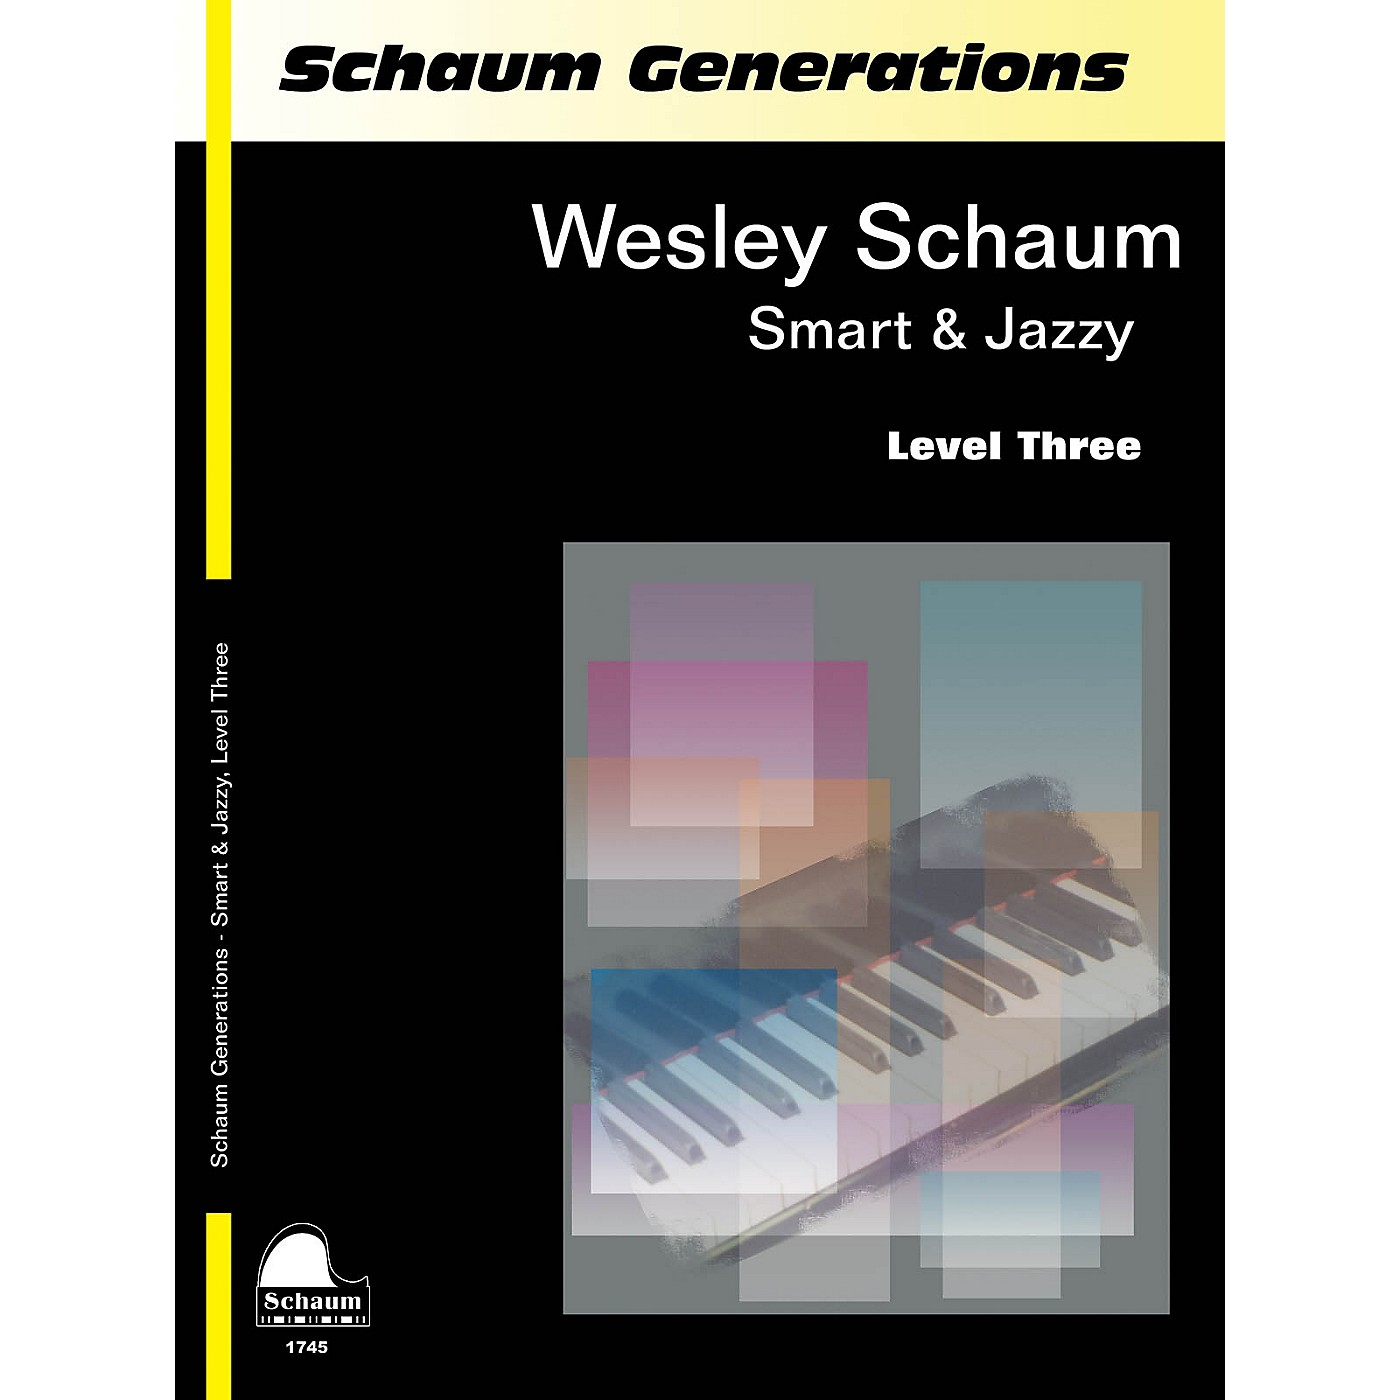 SCHAUM Generations: Smart & Jazzy Educational Piano Book by Wesley Schaum (Level Early Inter) thumbnail